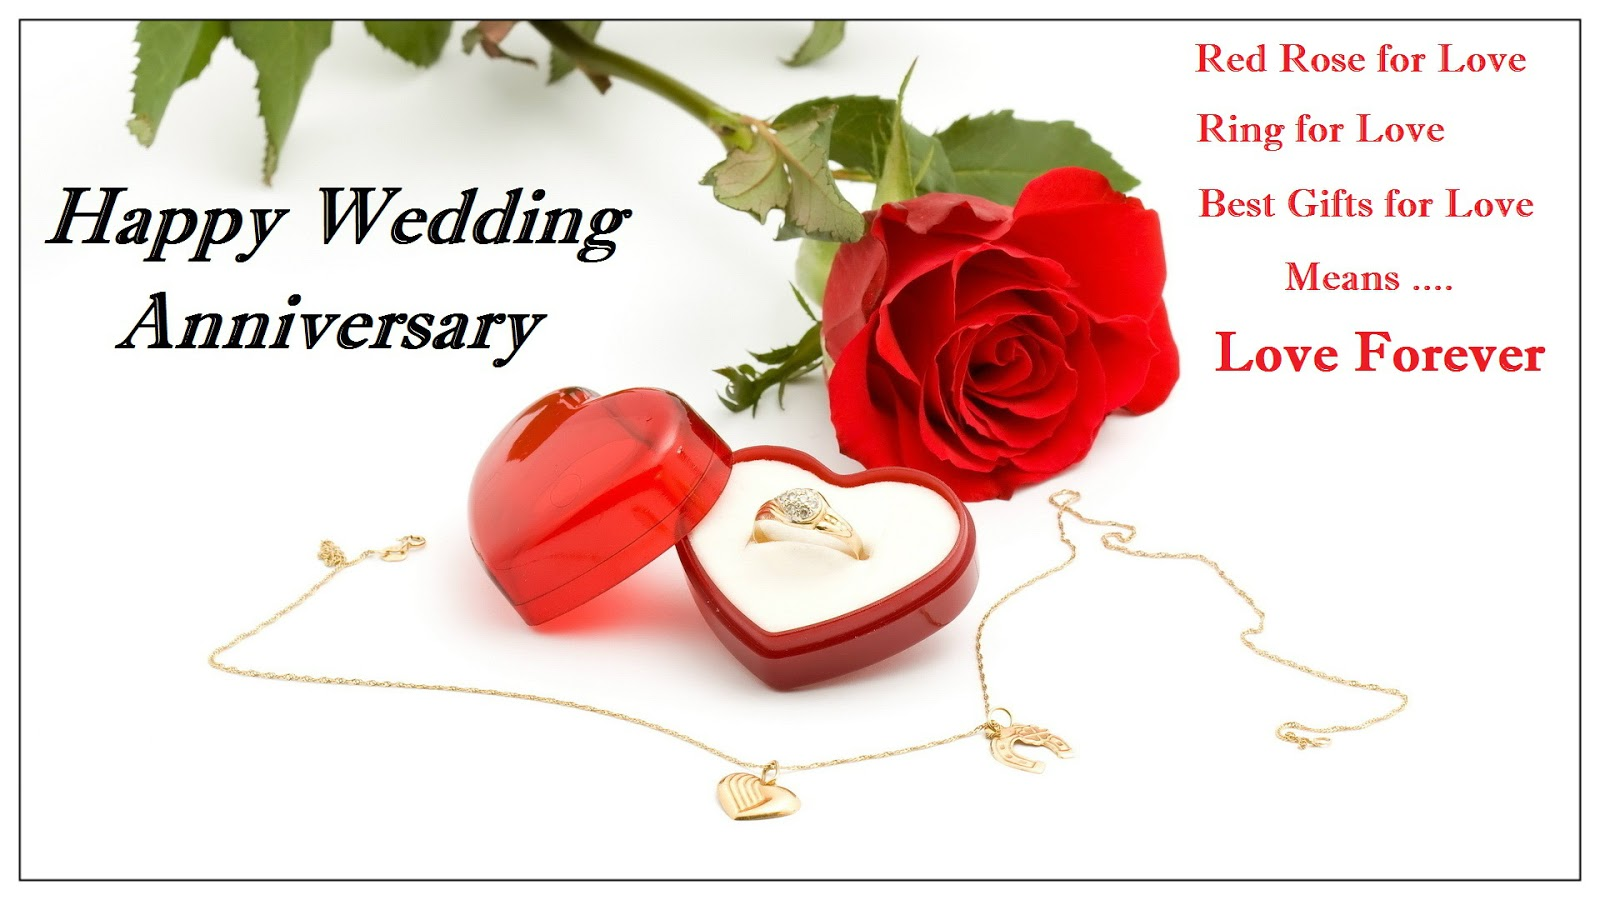 Good Morning Animation Wallpaper Hot And Sexy Wedding Anniversary Cards Download Festival